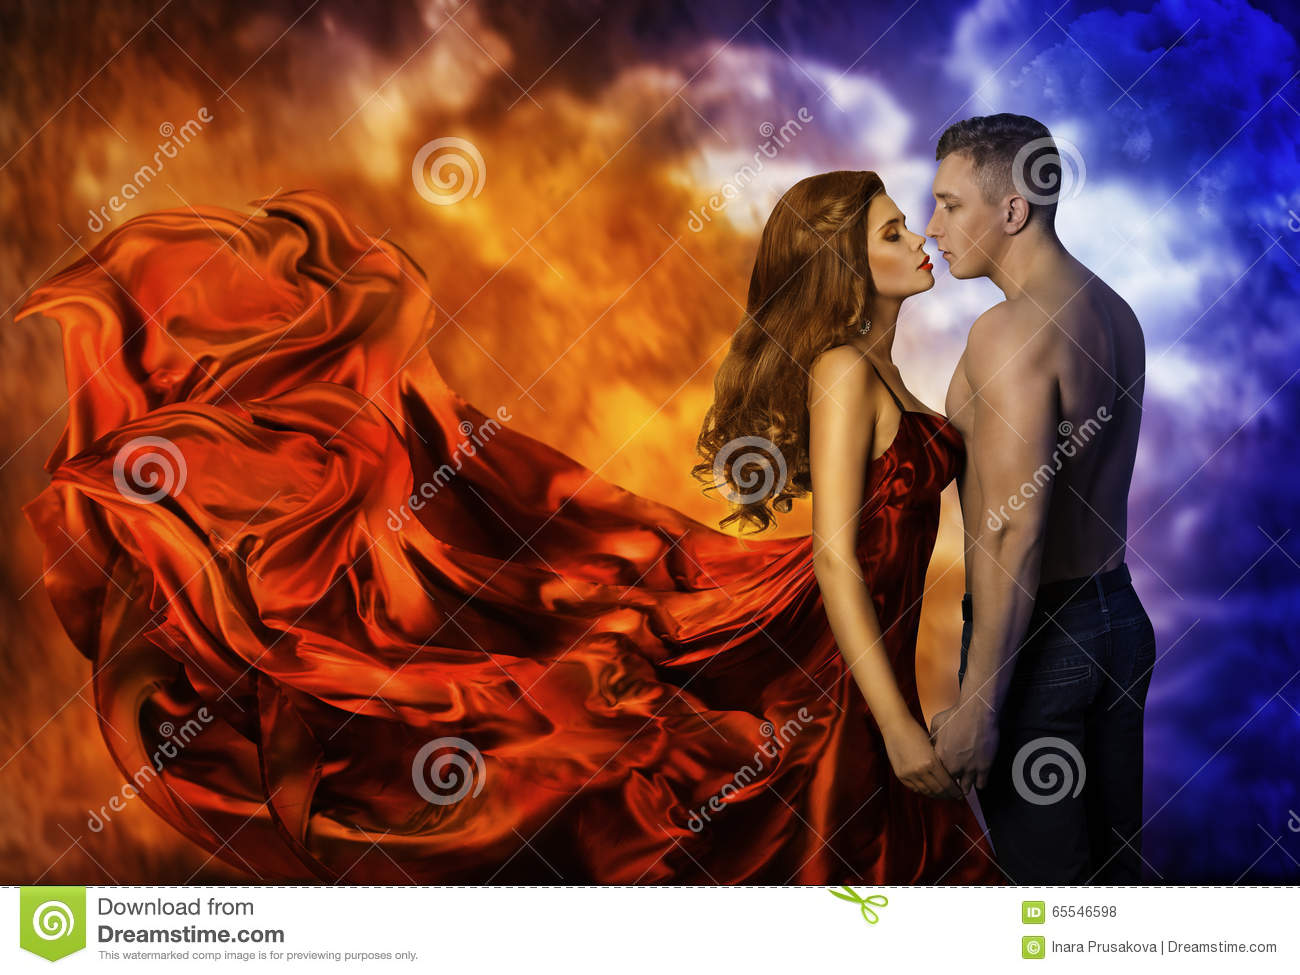 Couple in Love, Hot Fire Woman Cold Man, Romantic Kiss